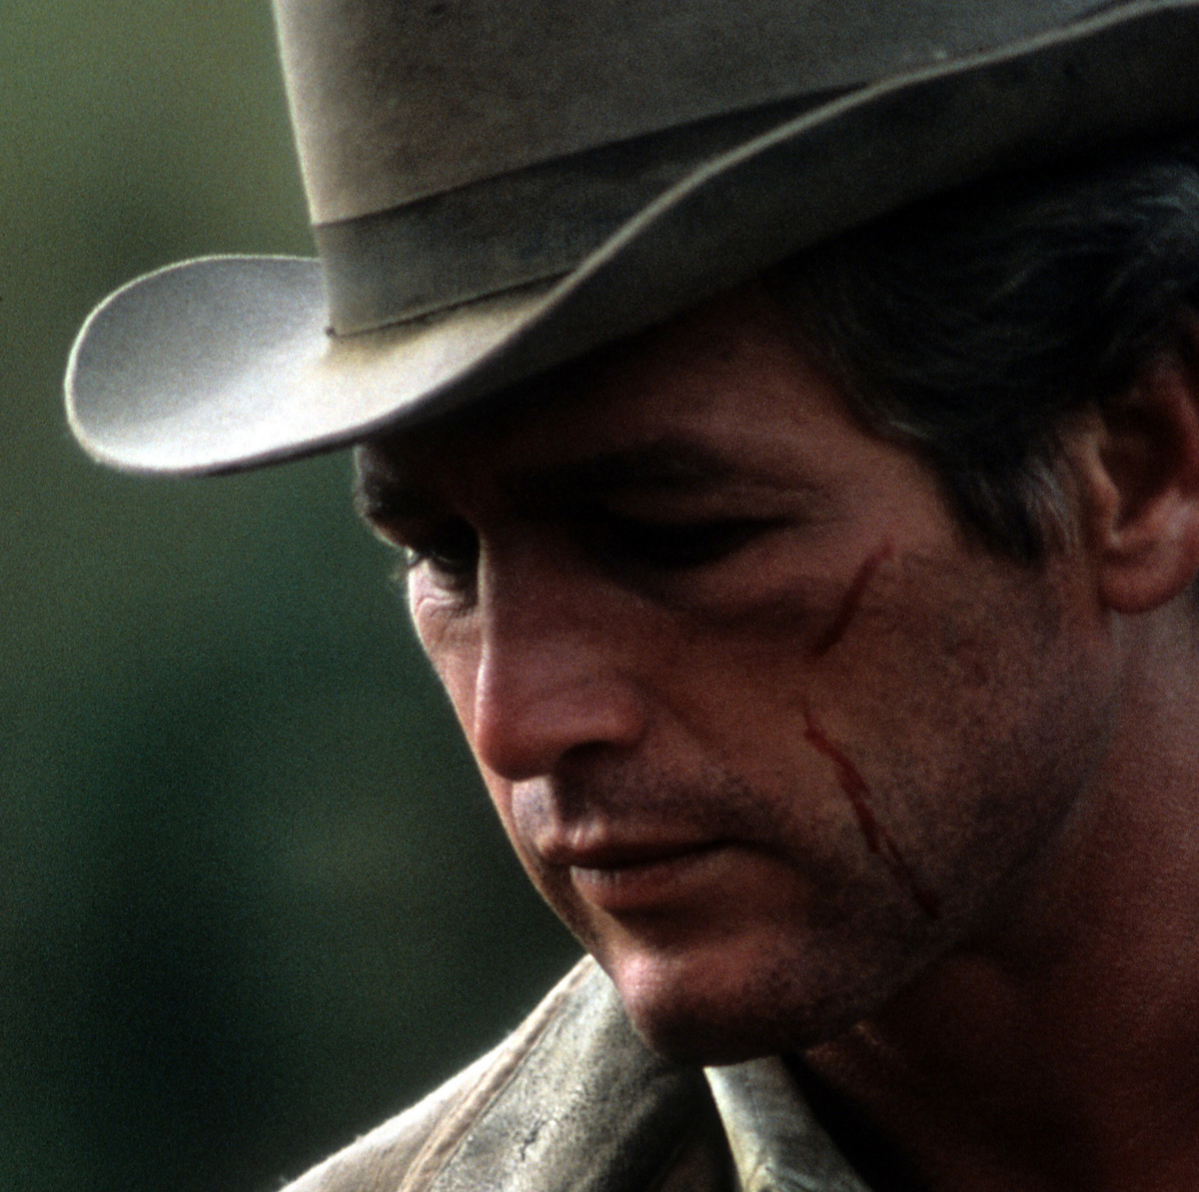 Paul Newman in a scene from the film 'Butch Cassidy and the Sundance Kid', 1969.